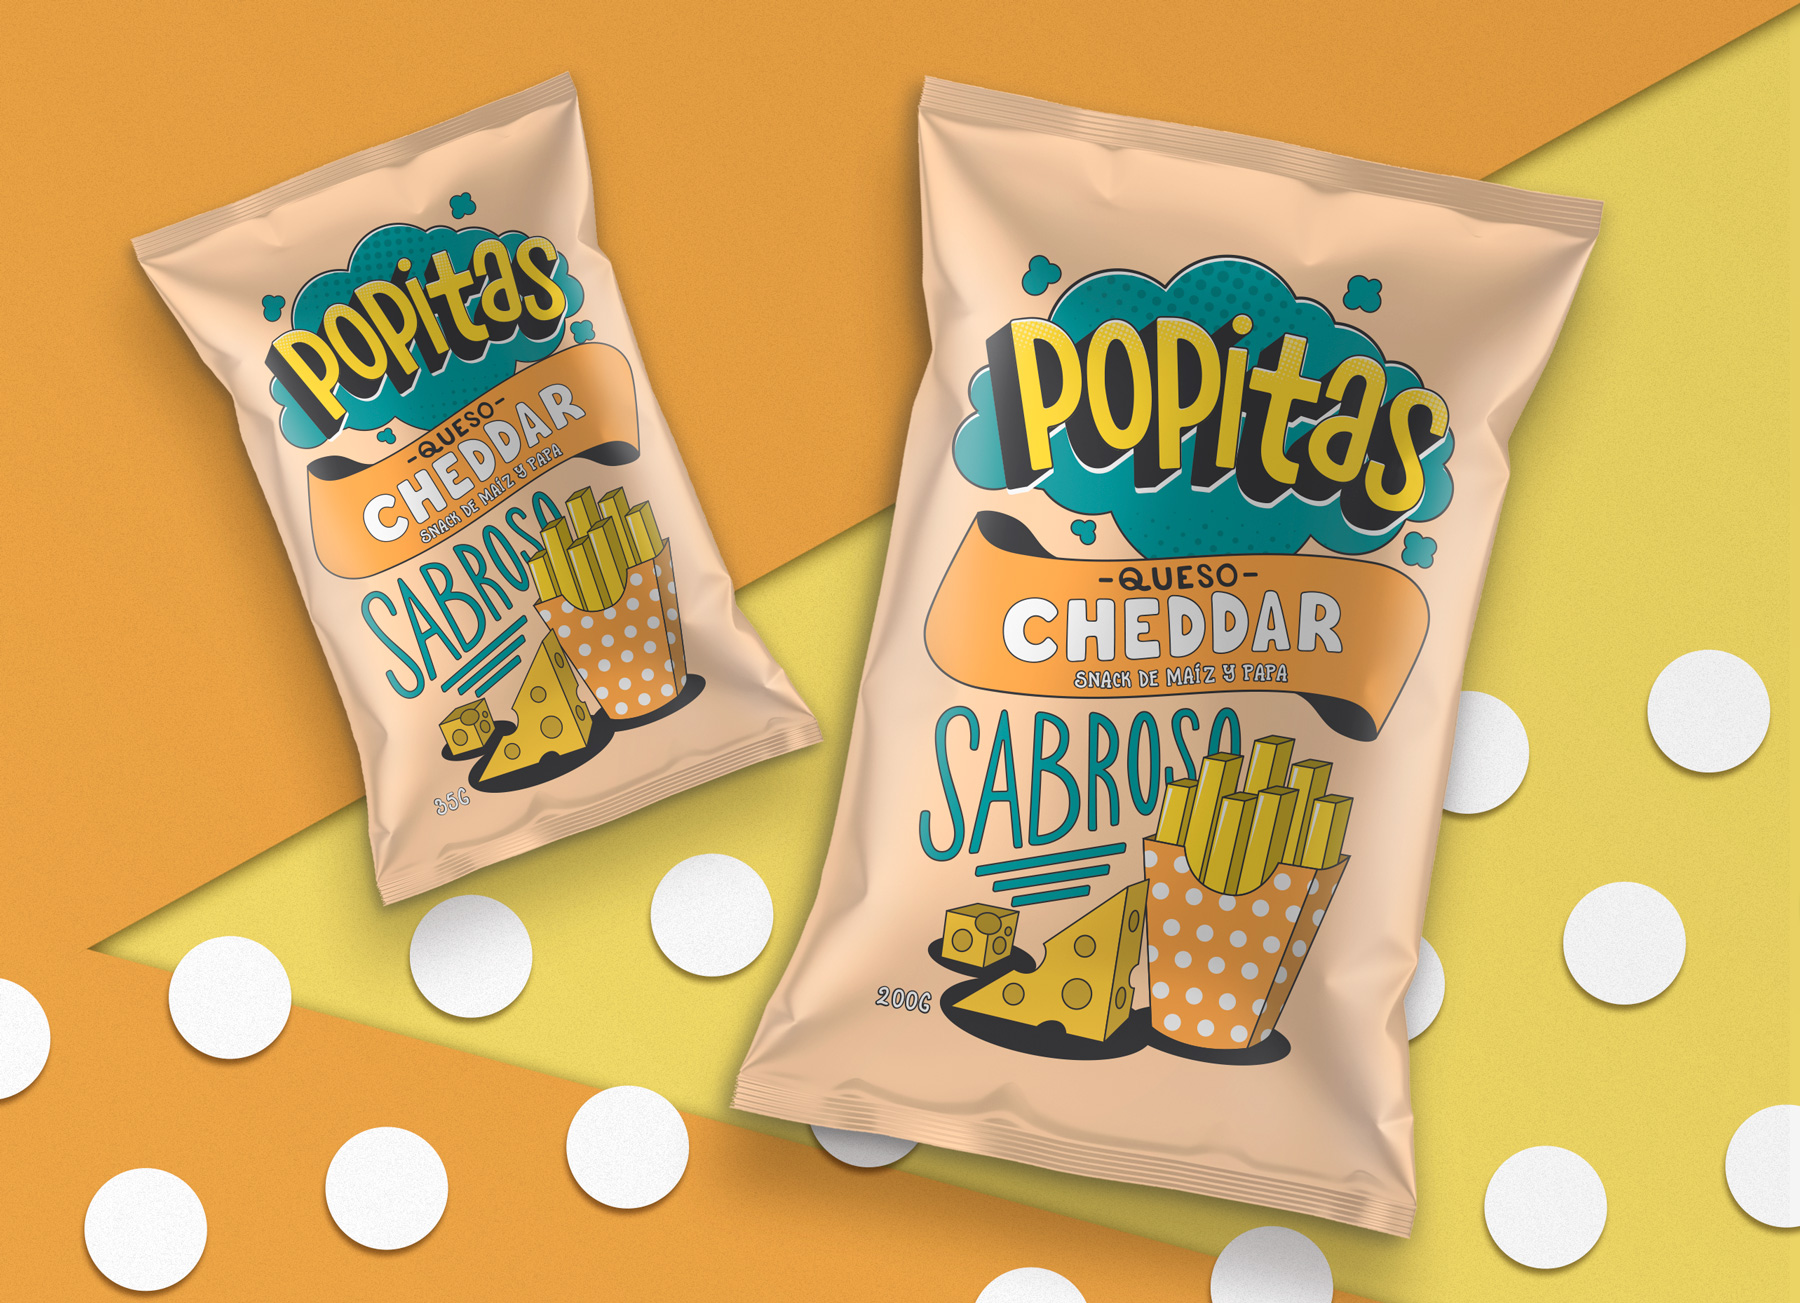 Branding and Packaging design for Popitas brand